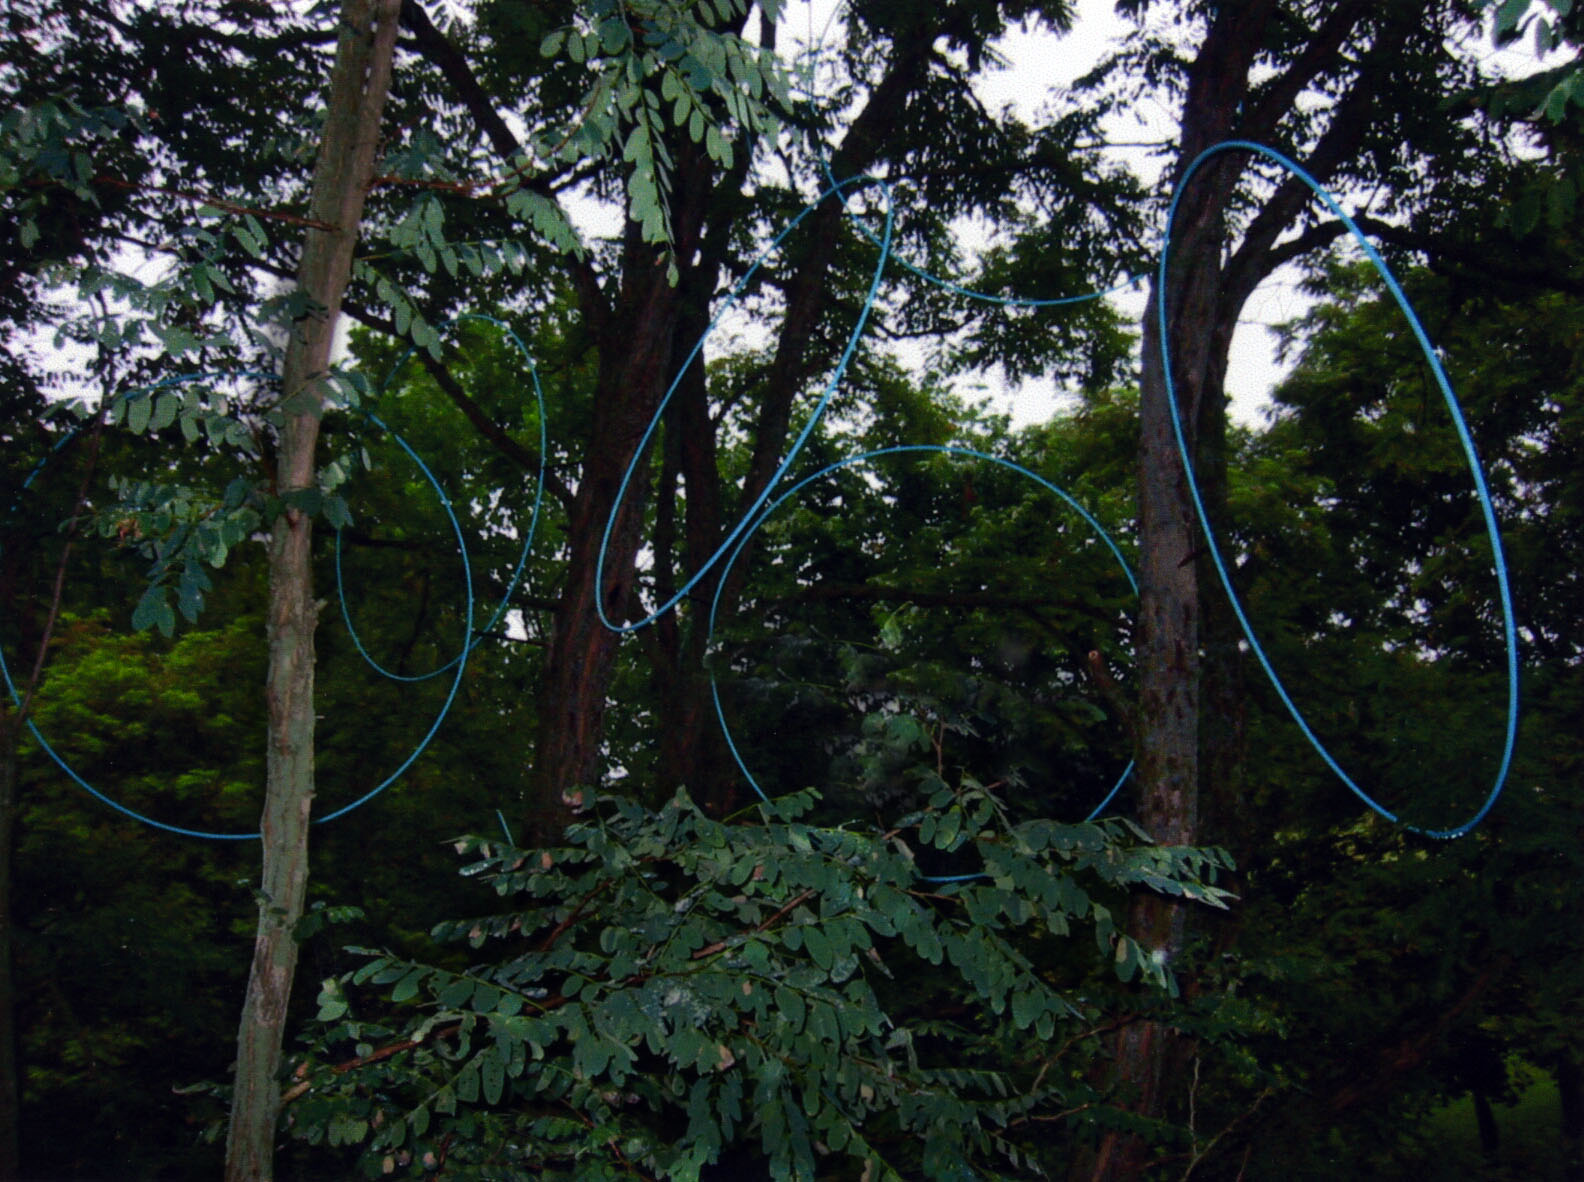 19 Spirit Play, 2004 site-specific installation Art Omi, steel, dimensions variable (1).jpg